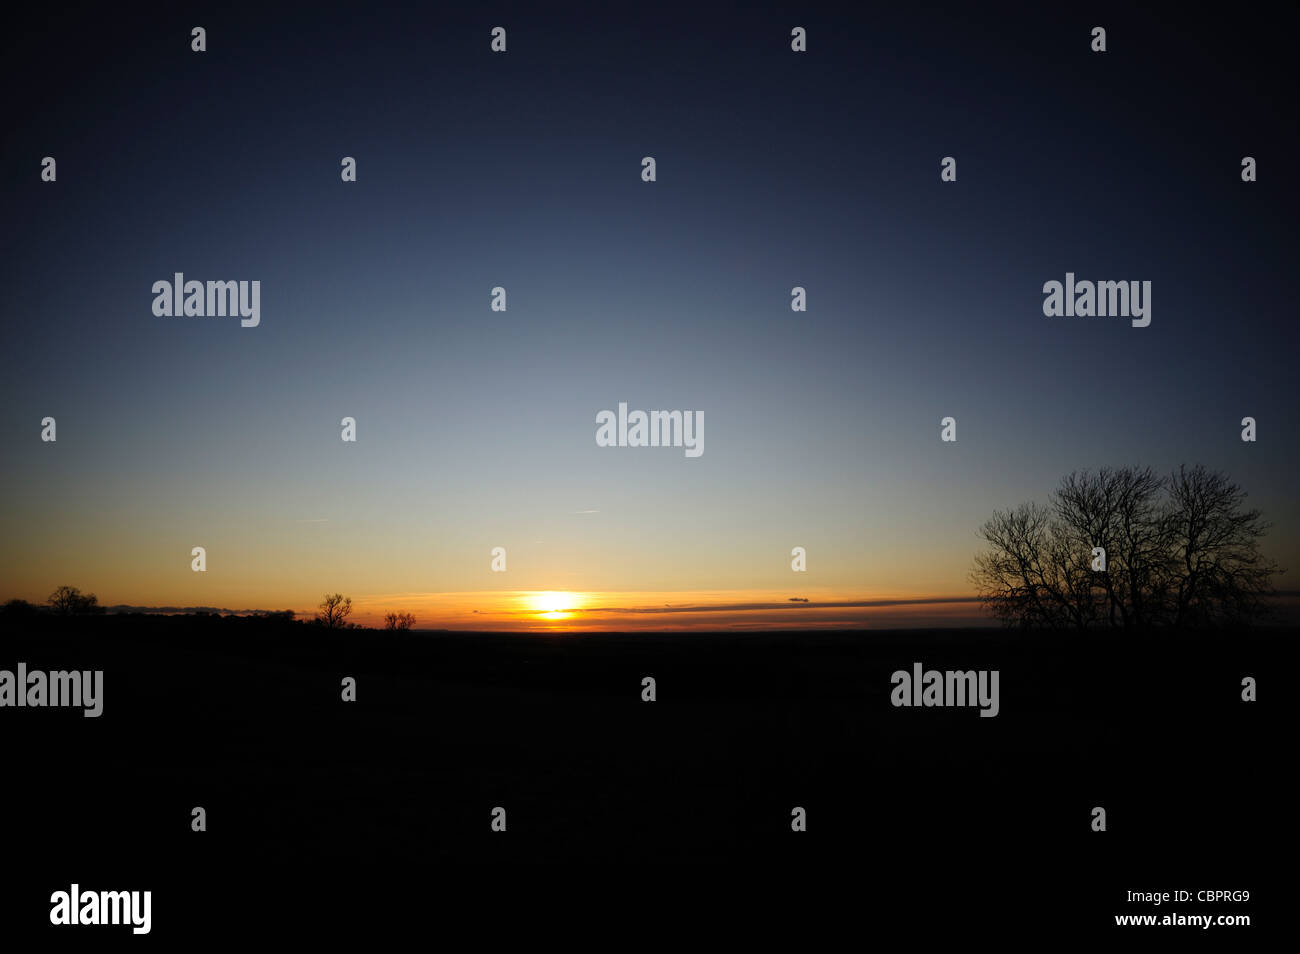 Sunset Winter Lincolnshire showing wave patterns - Stock Image